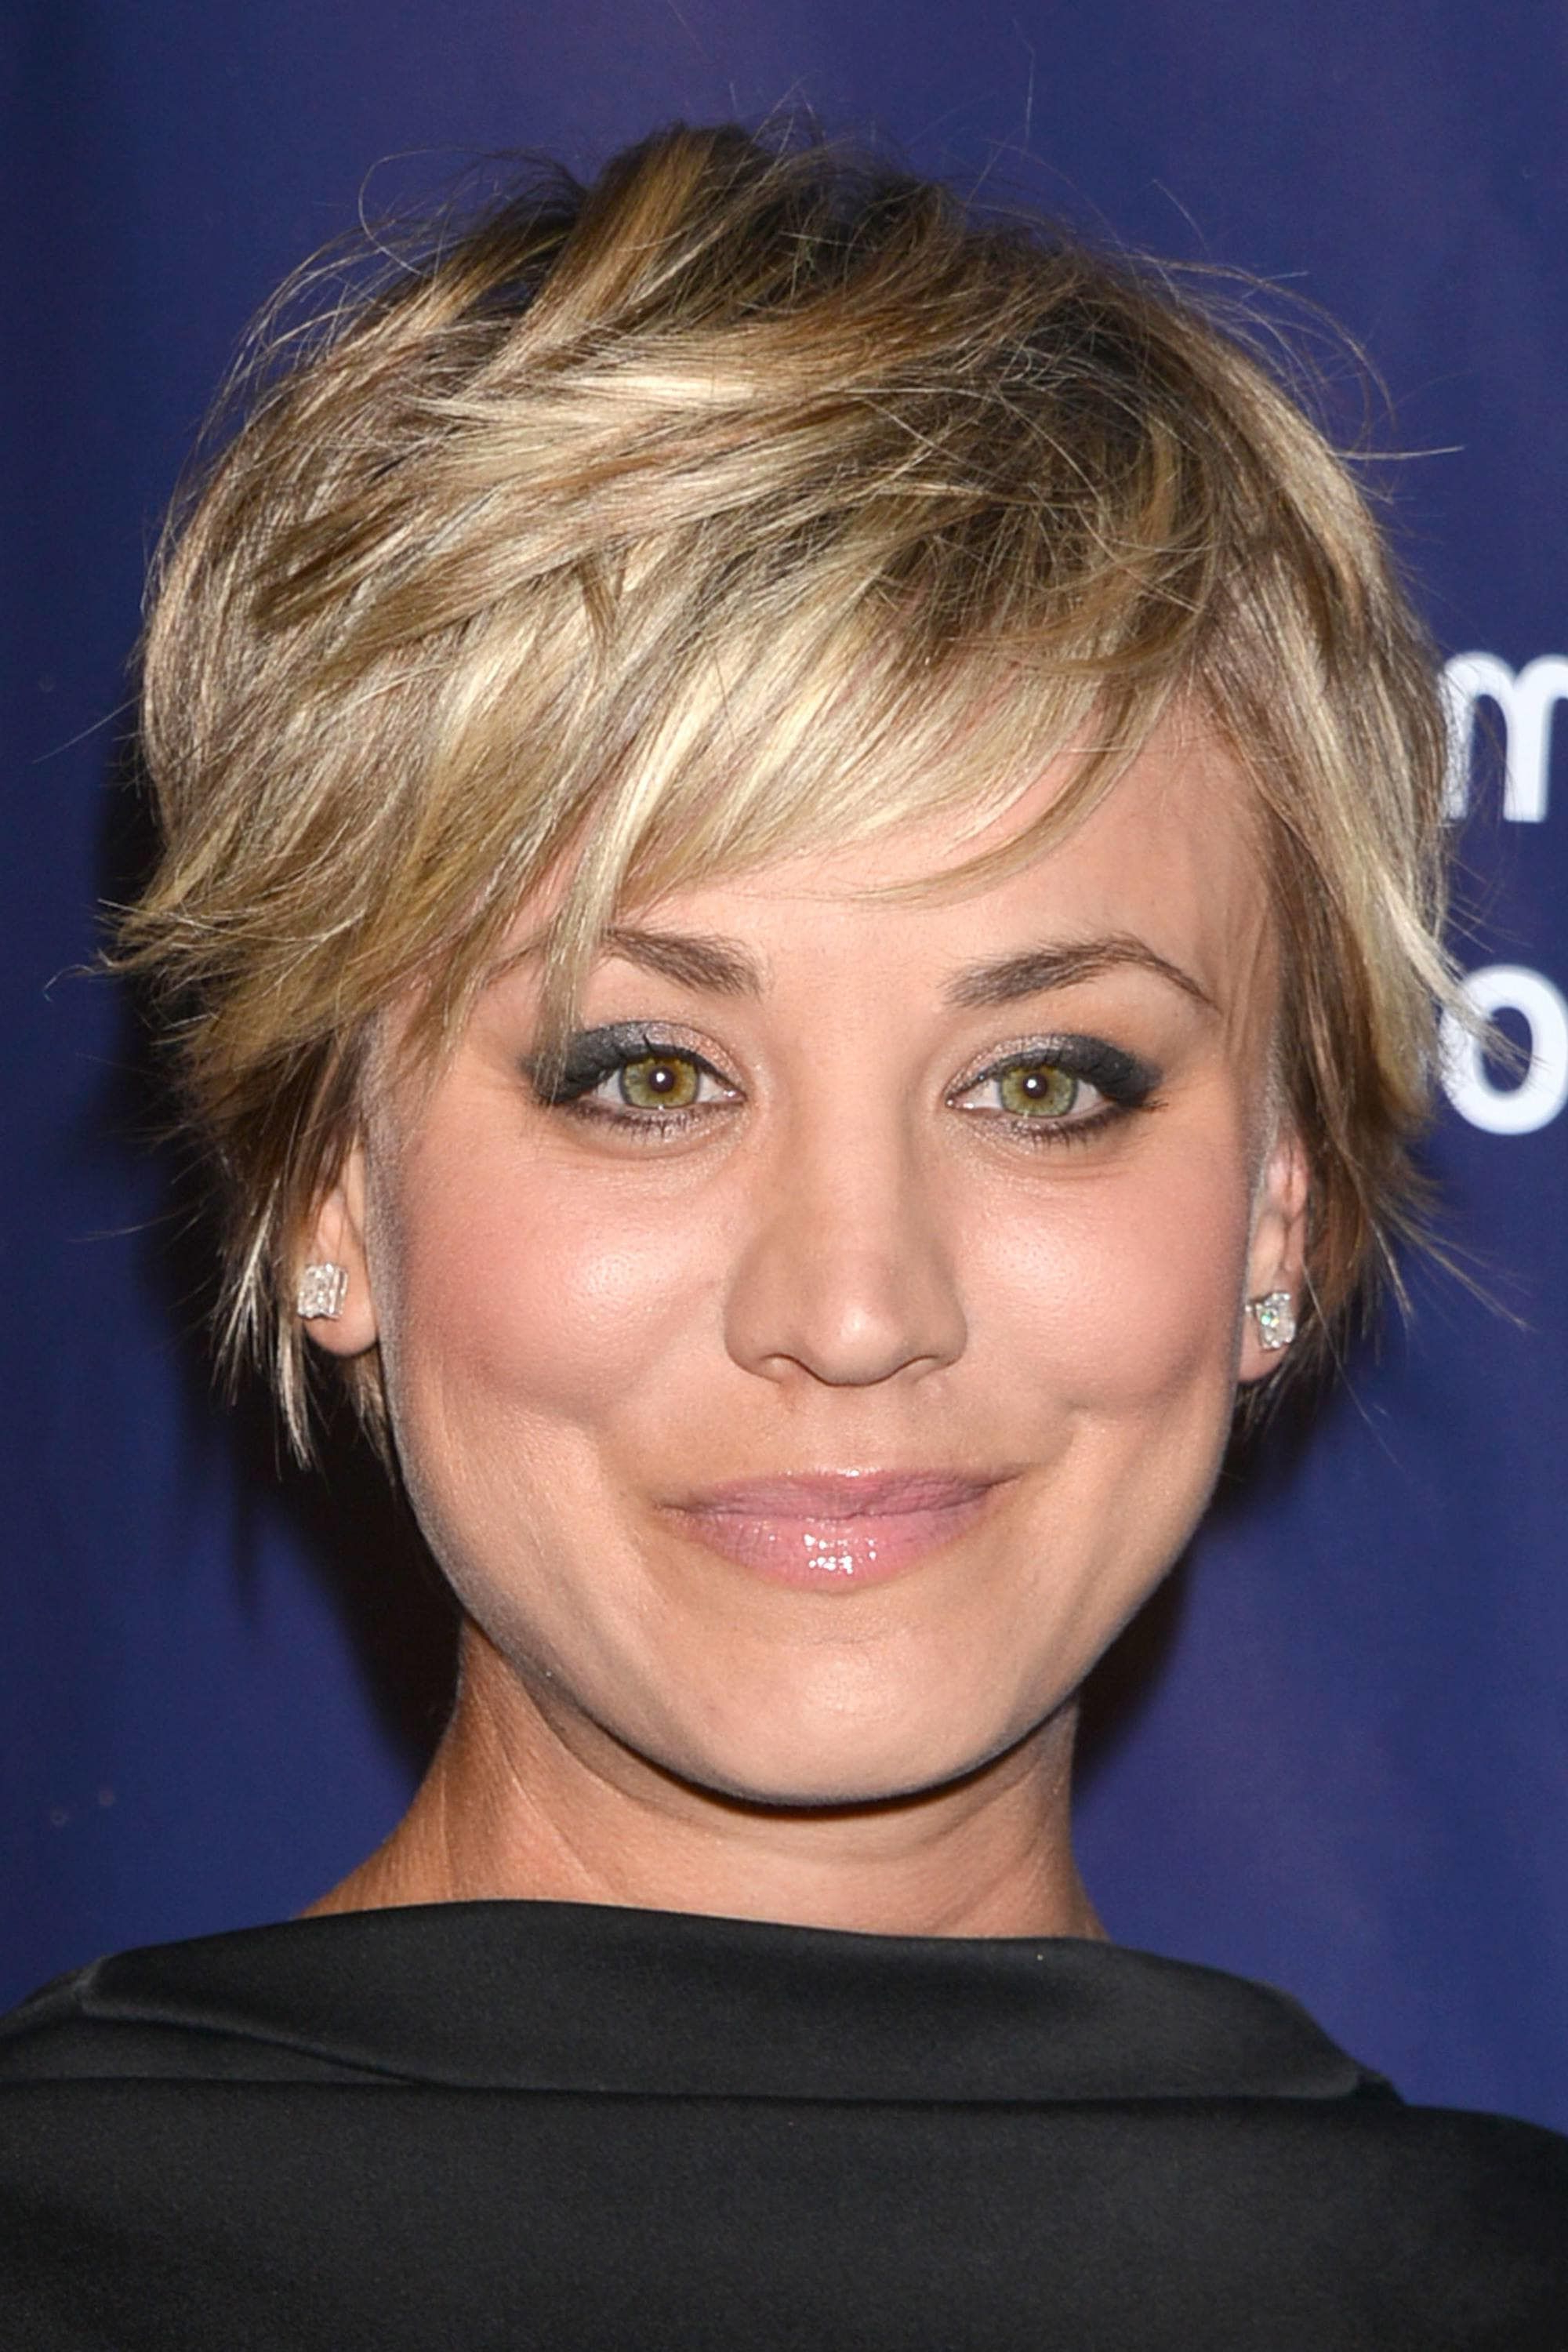 Image Result For Kaley Cuoco Short Hair Heavy Layers | Short Inside Kaley Cuoco Short Hairstyles (View 20 of 25)